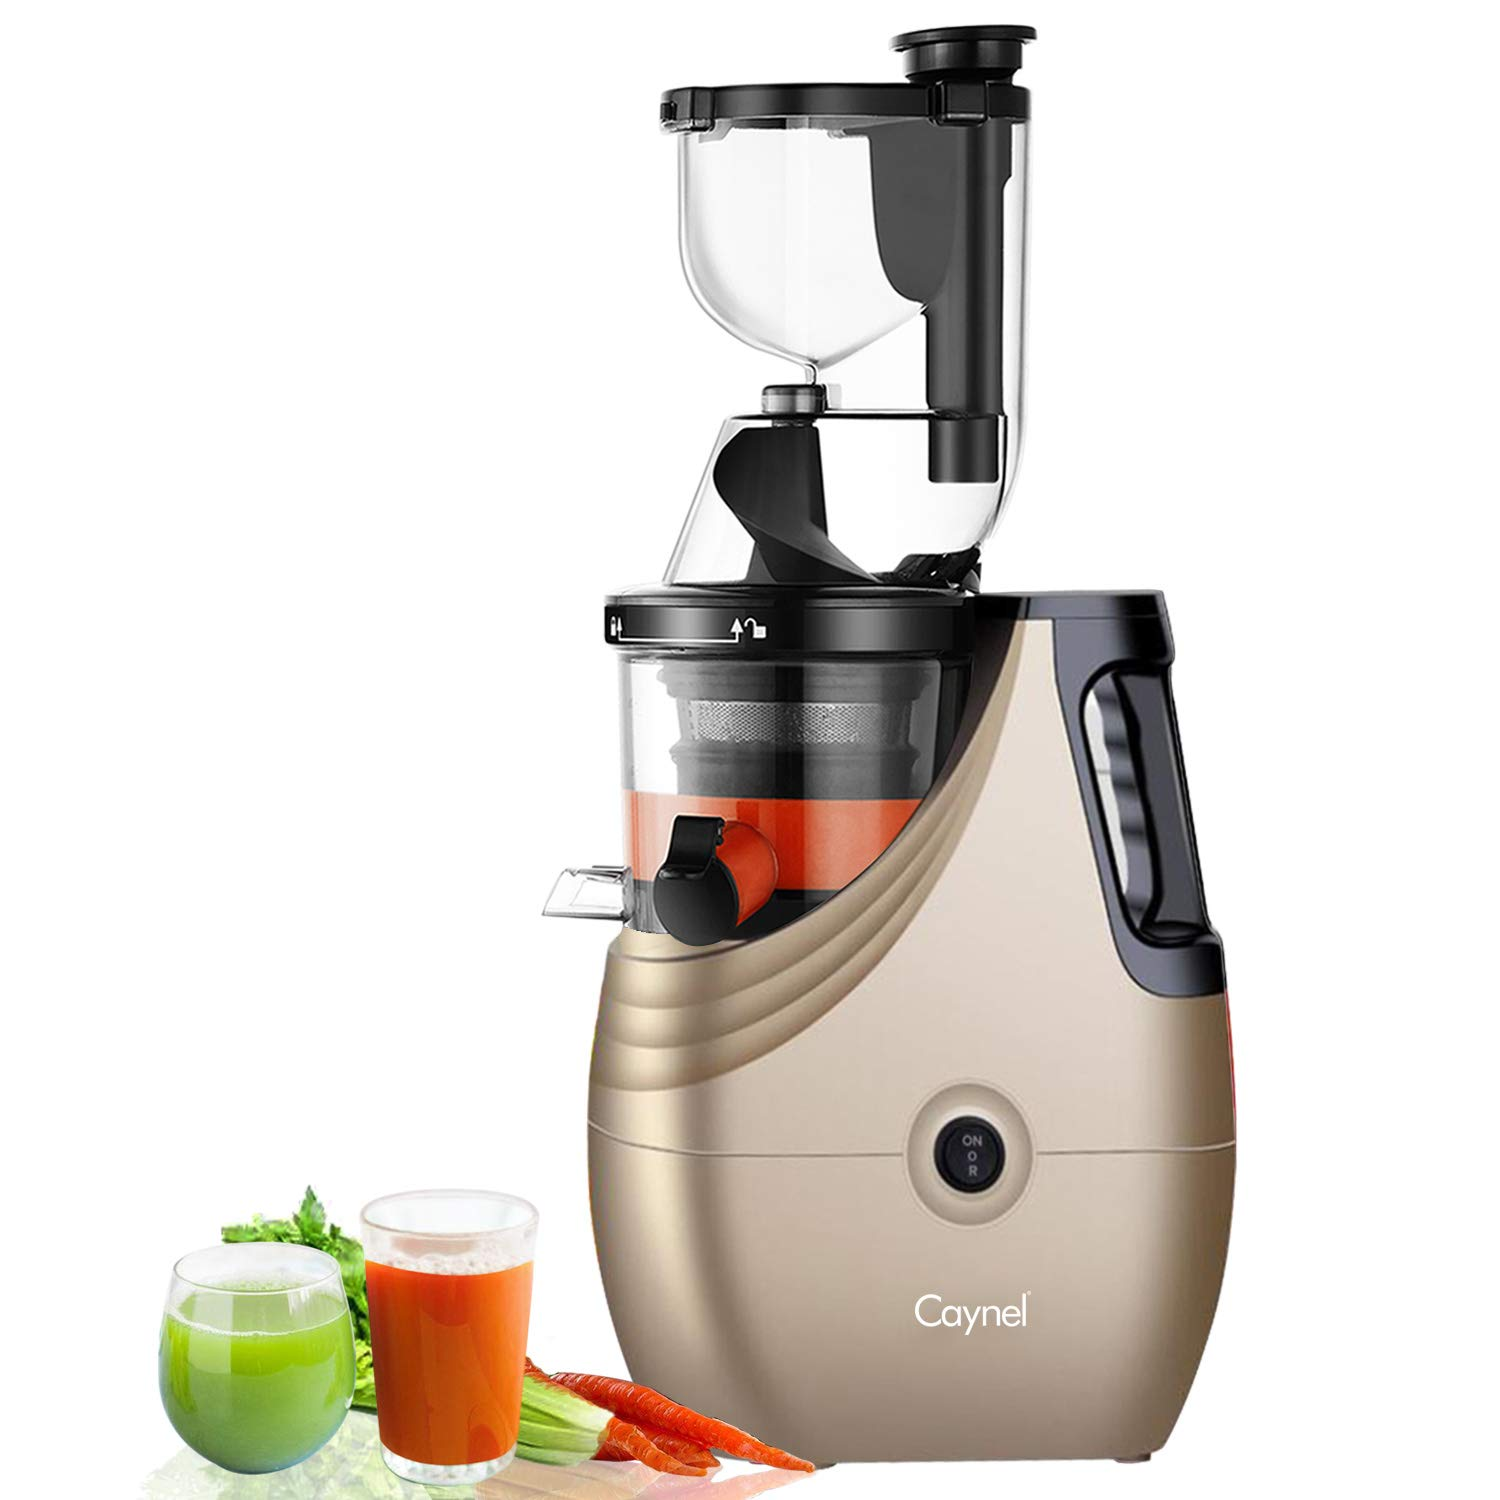 Slow Masticating Juicer Caynel Cold Press Extractor with 3'' Wide Chute for Fruits, Vegetables and Herbs, Quiet Durable Motor with Reverse Function, High Yield Vertical Juicer Easy Cleaning, BPA Free by CAYNEL